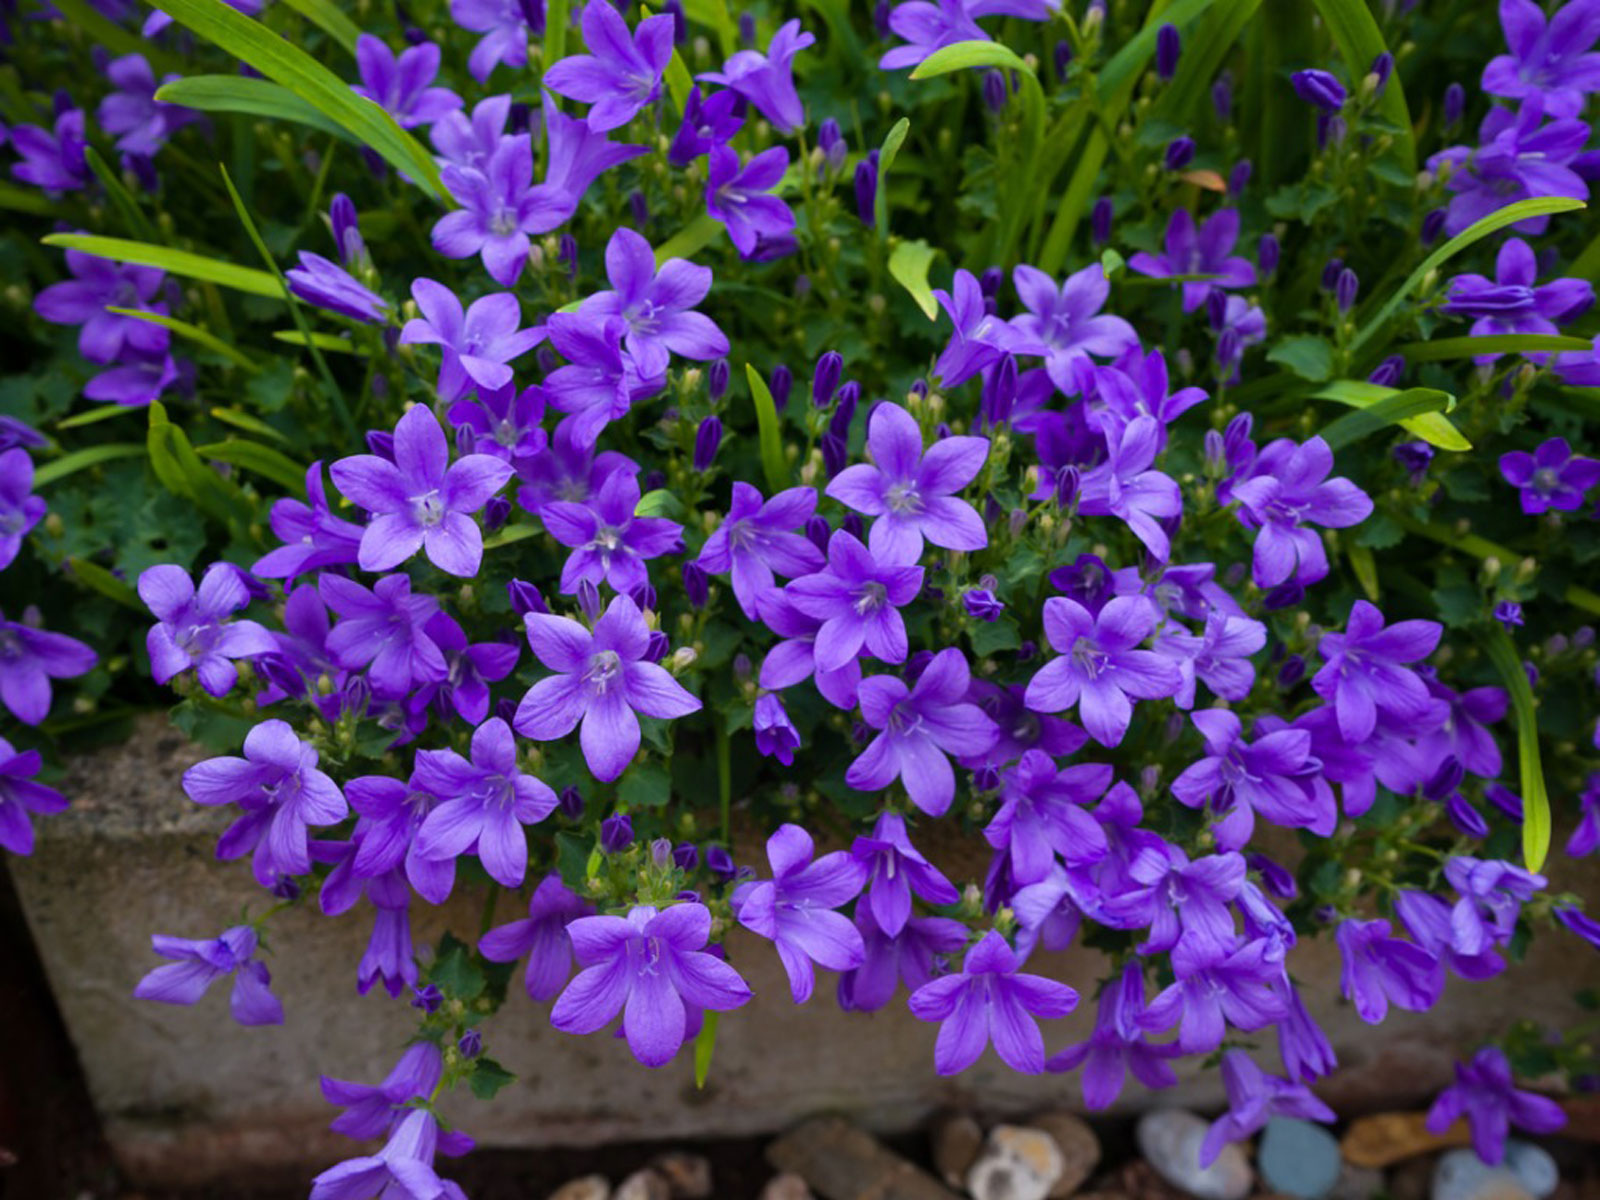 Campanula Bellflower Care Conditions For Growing Bellflowers